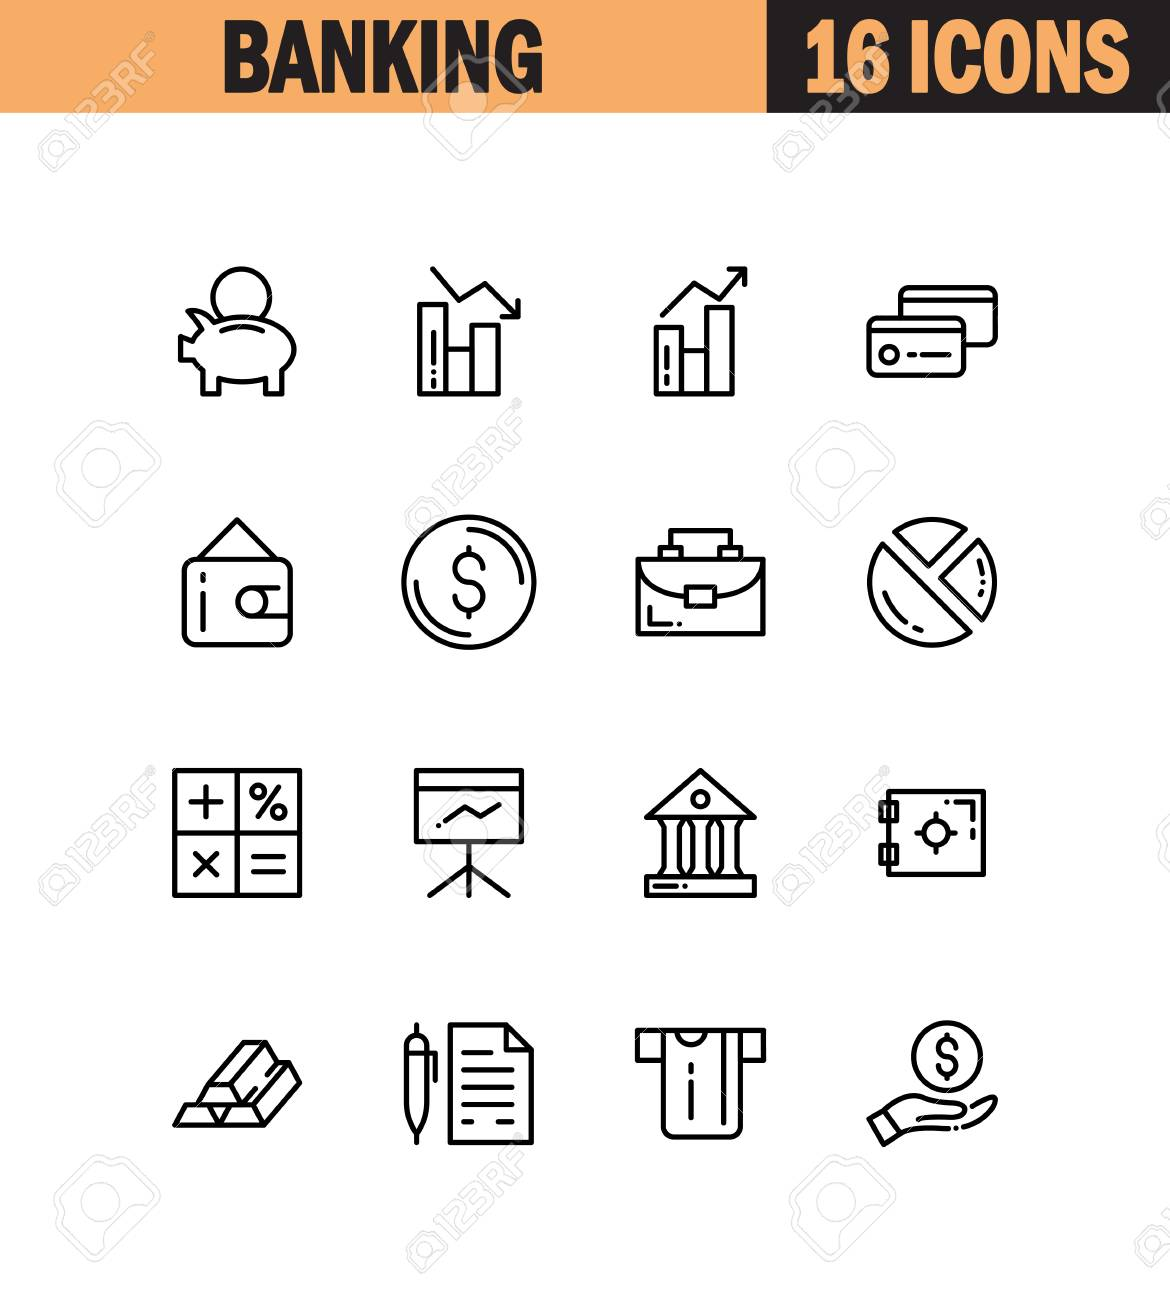 Banking Flat Icon Set Collection Of High Quality Outline Symbols